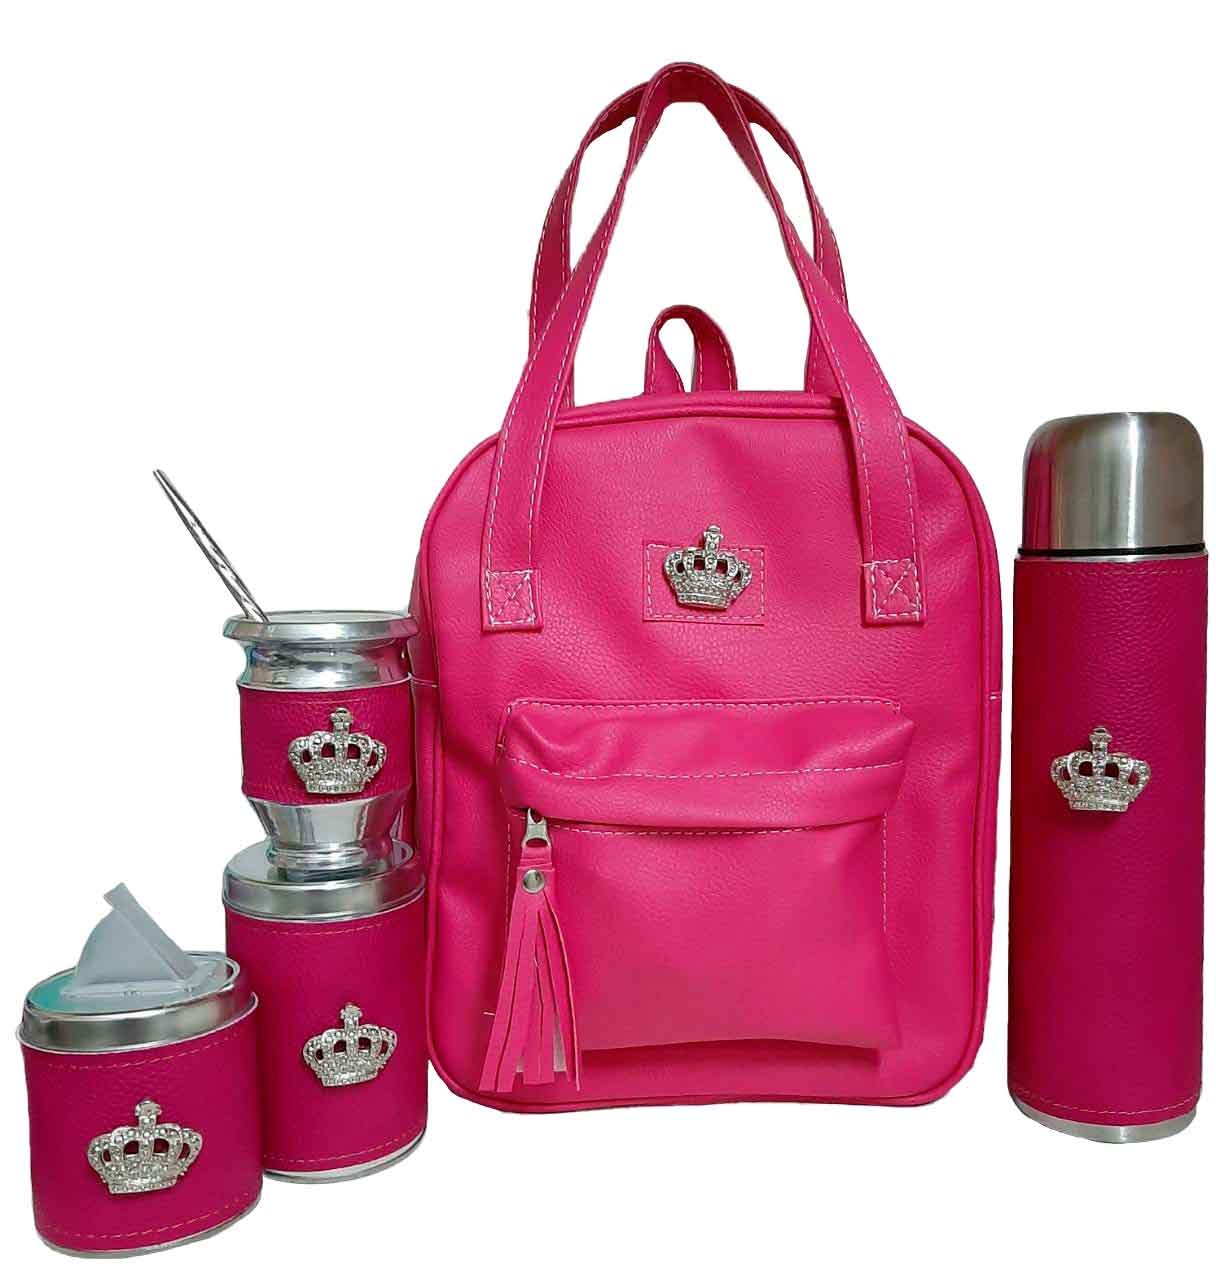 Cartera-nueva-con-kit-matero-corona-color-fucsia